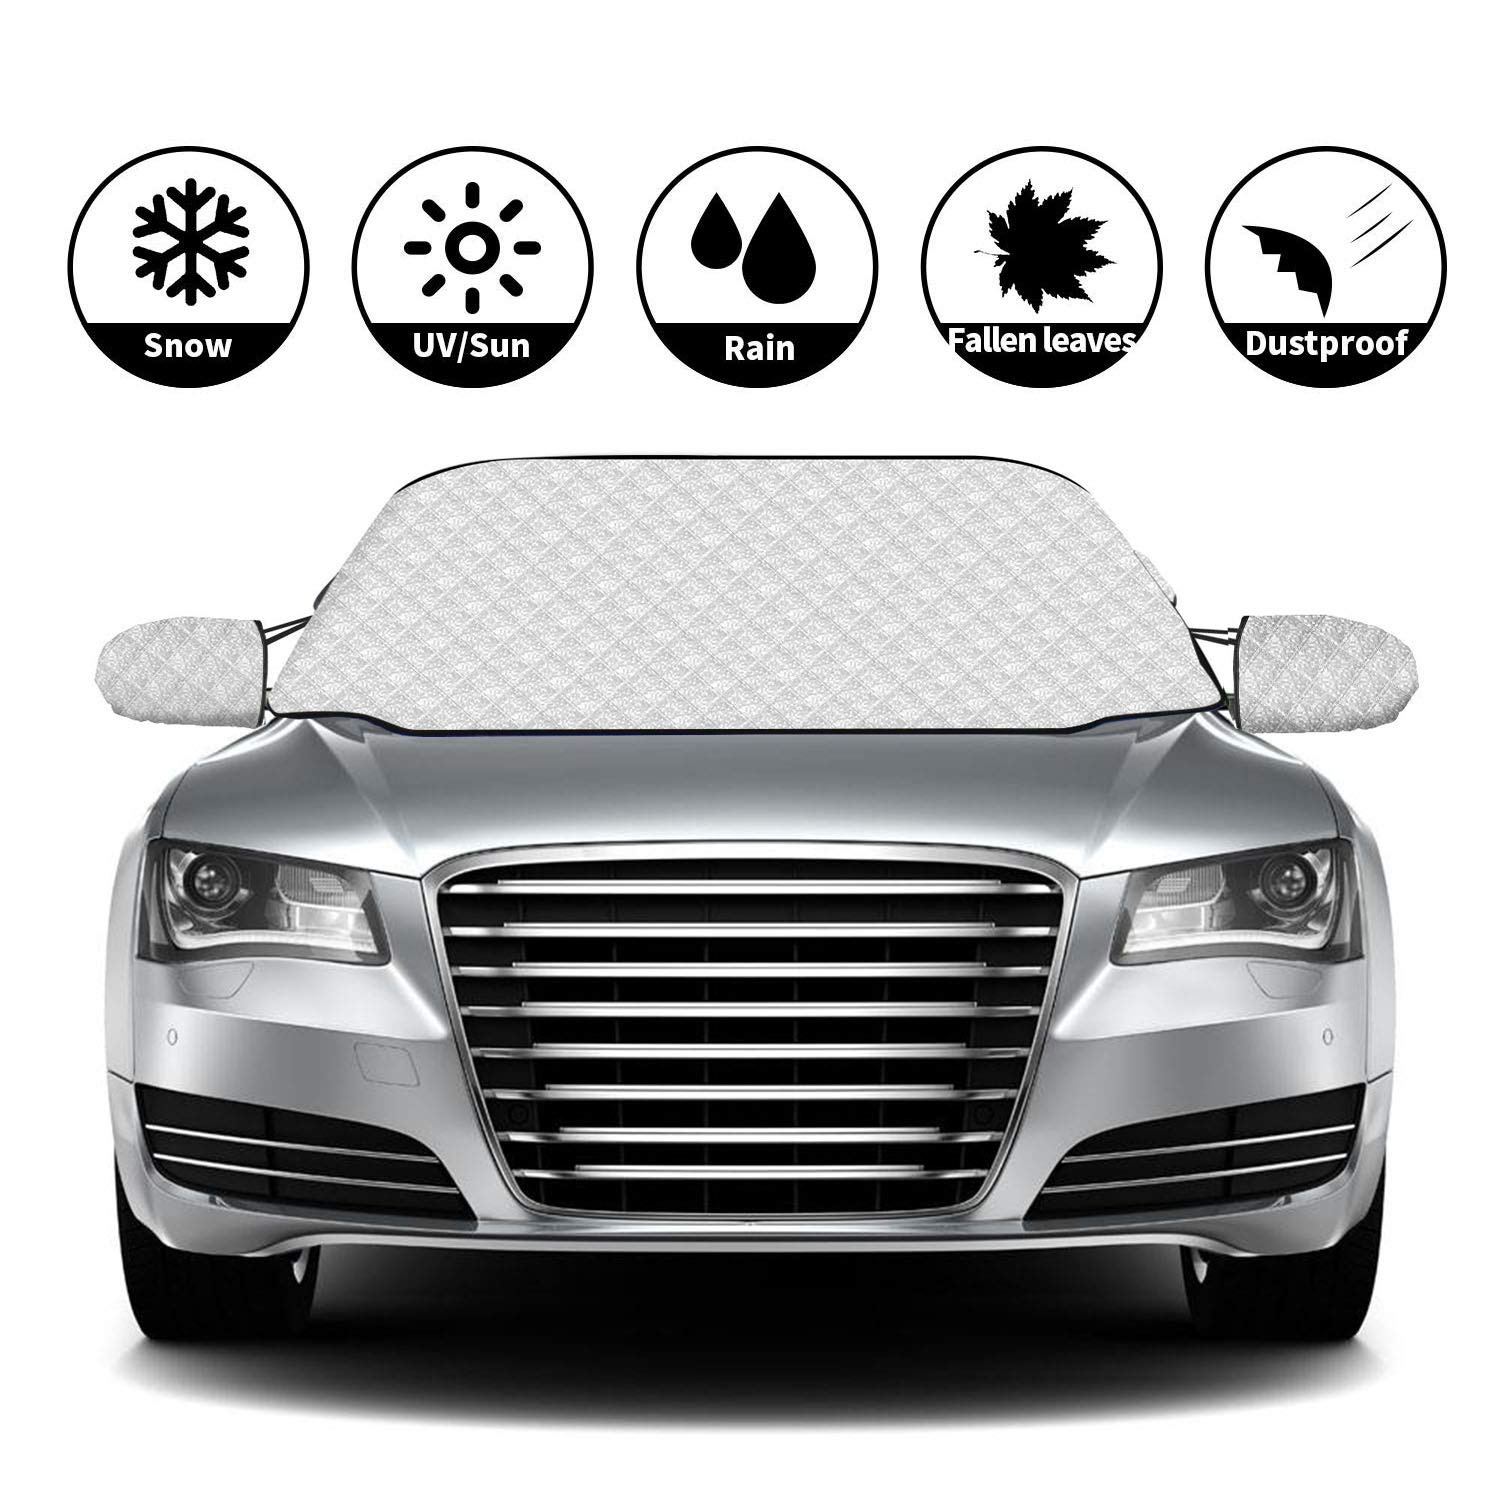 VAUXHALL ASTRA SPORTS TOURER 10-ON MAGNETIC CAR WINDSCREEN COVER